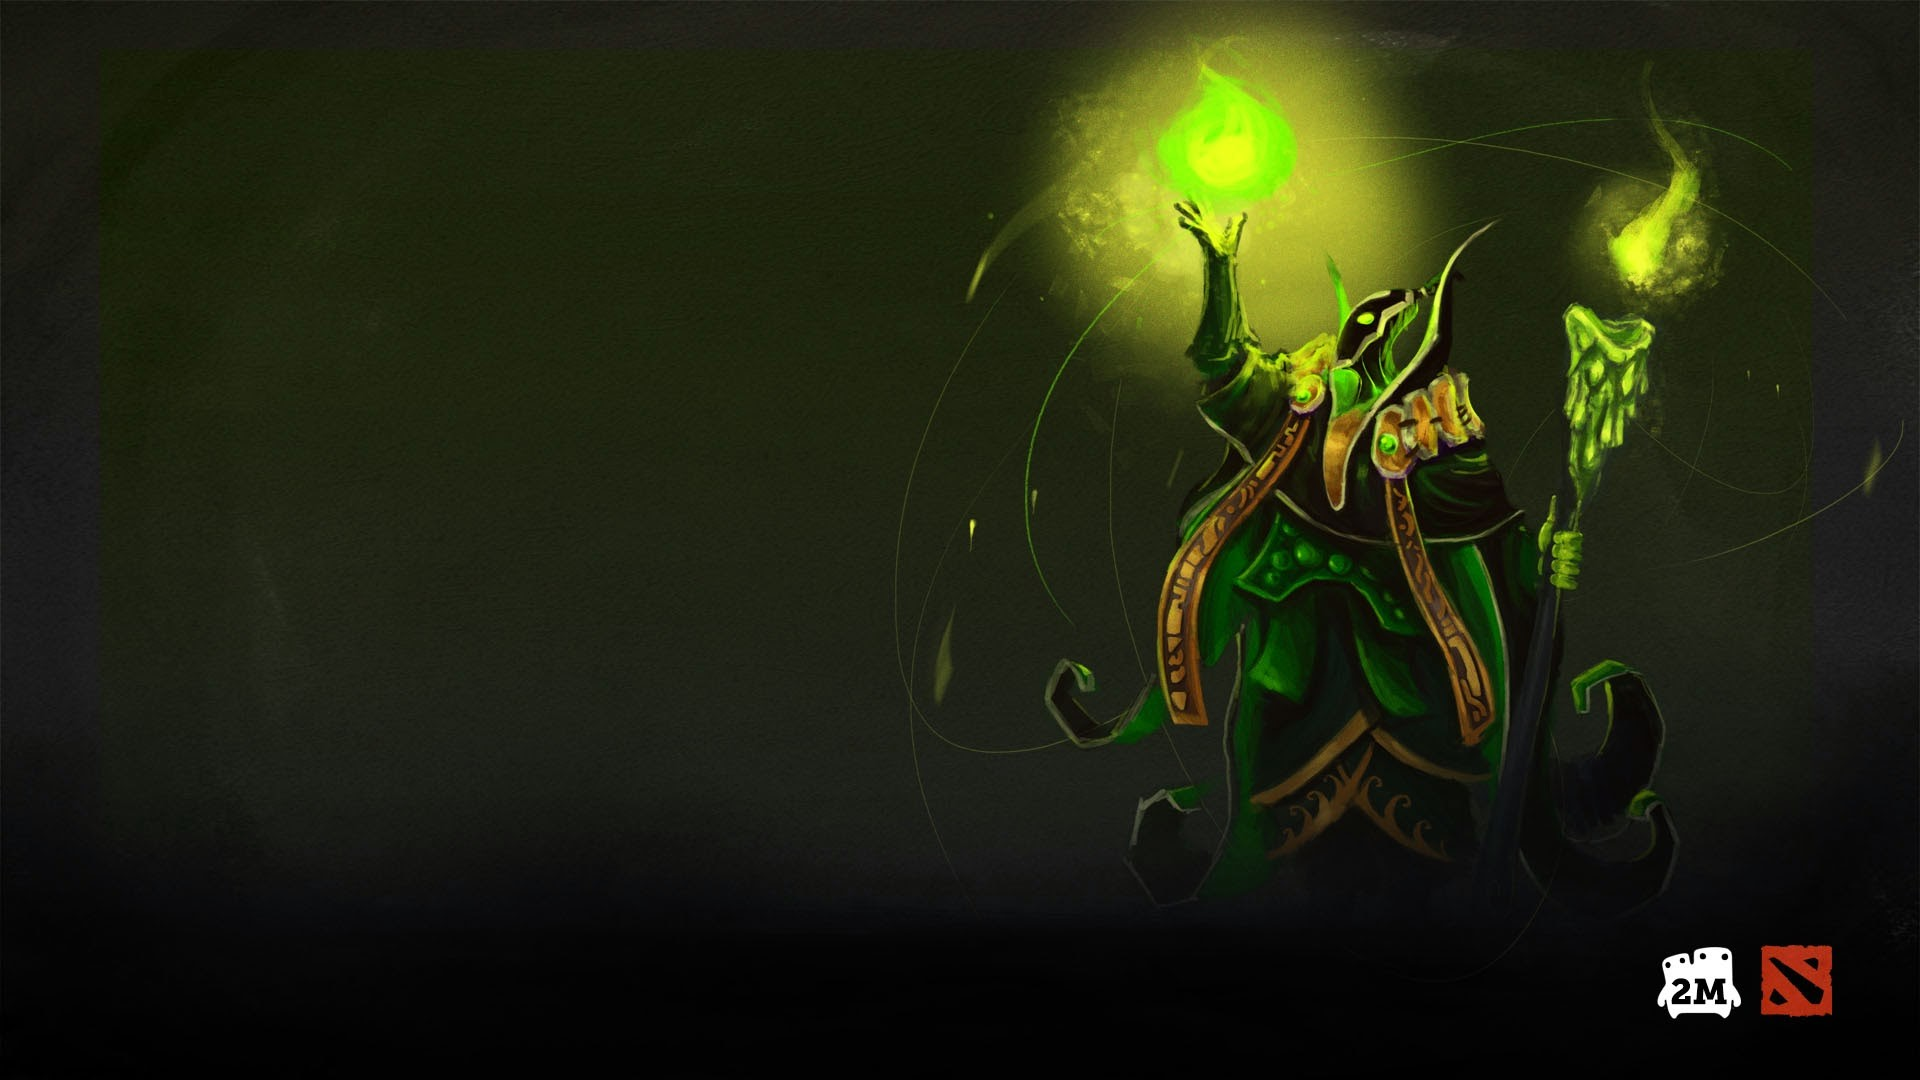 1920x1080 Elegant Dota 2 Hd Wallpaper Wallpapersafari